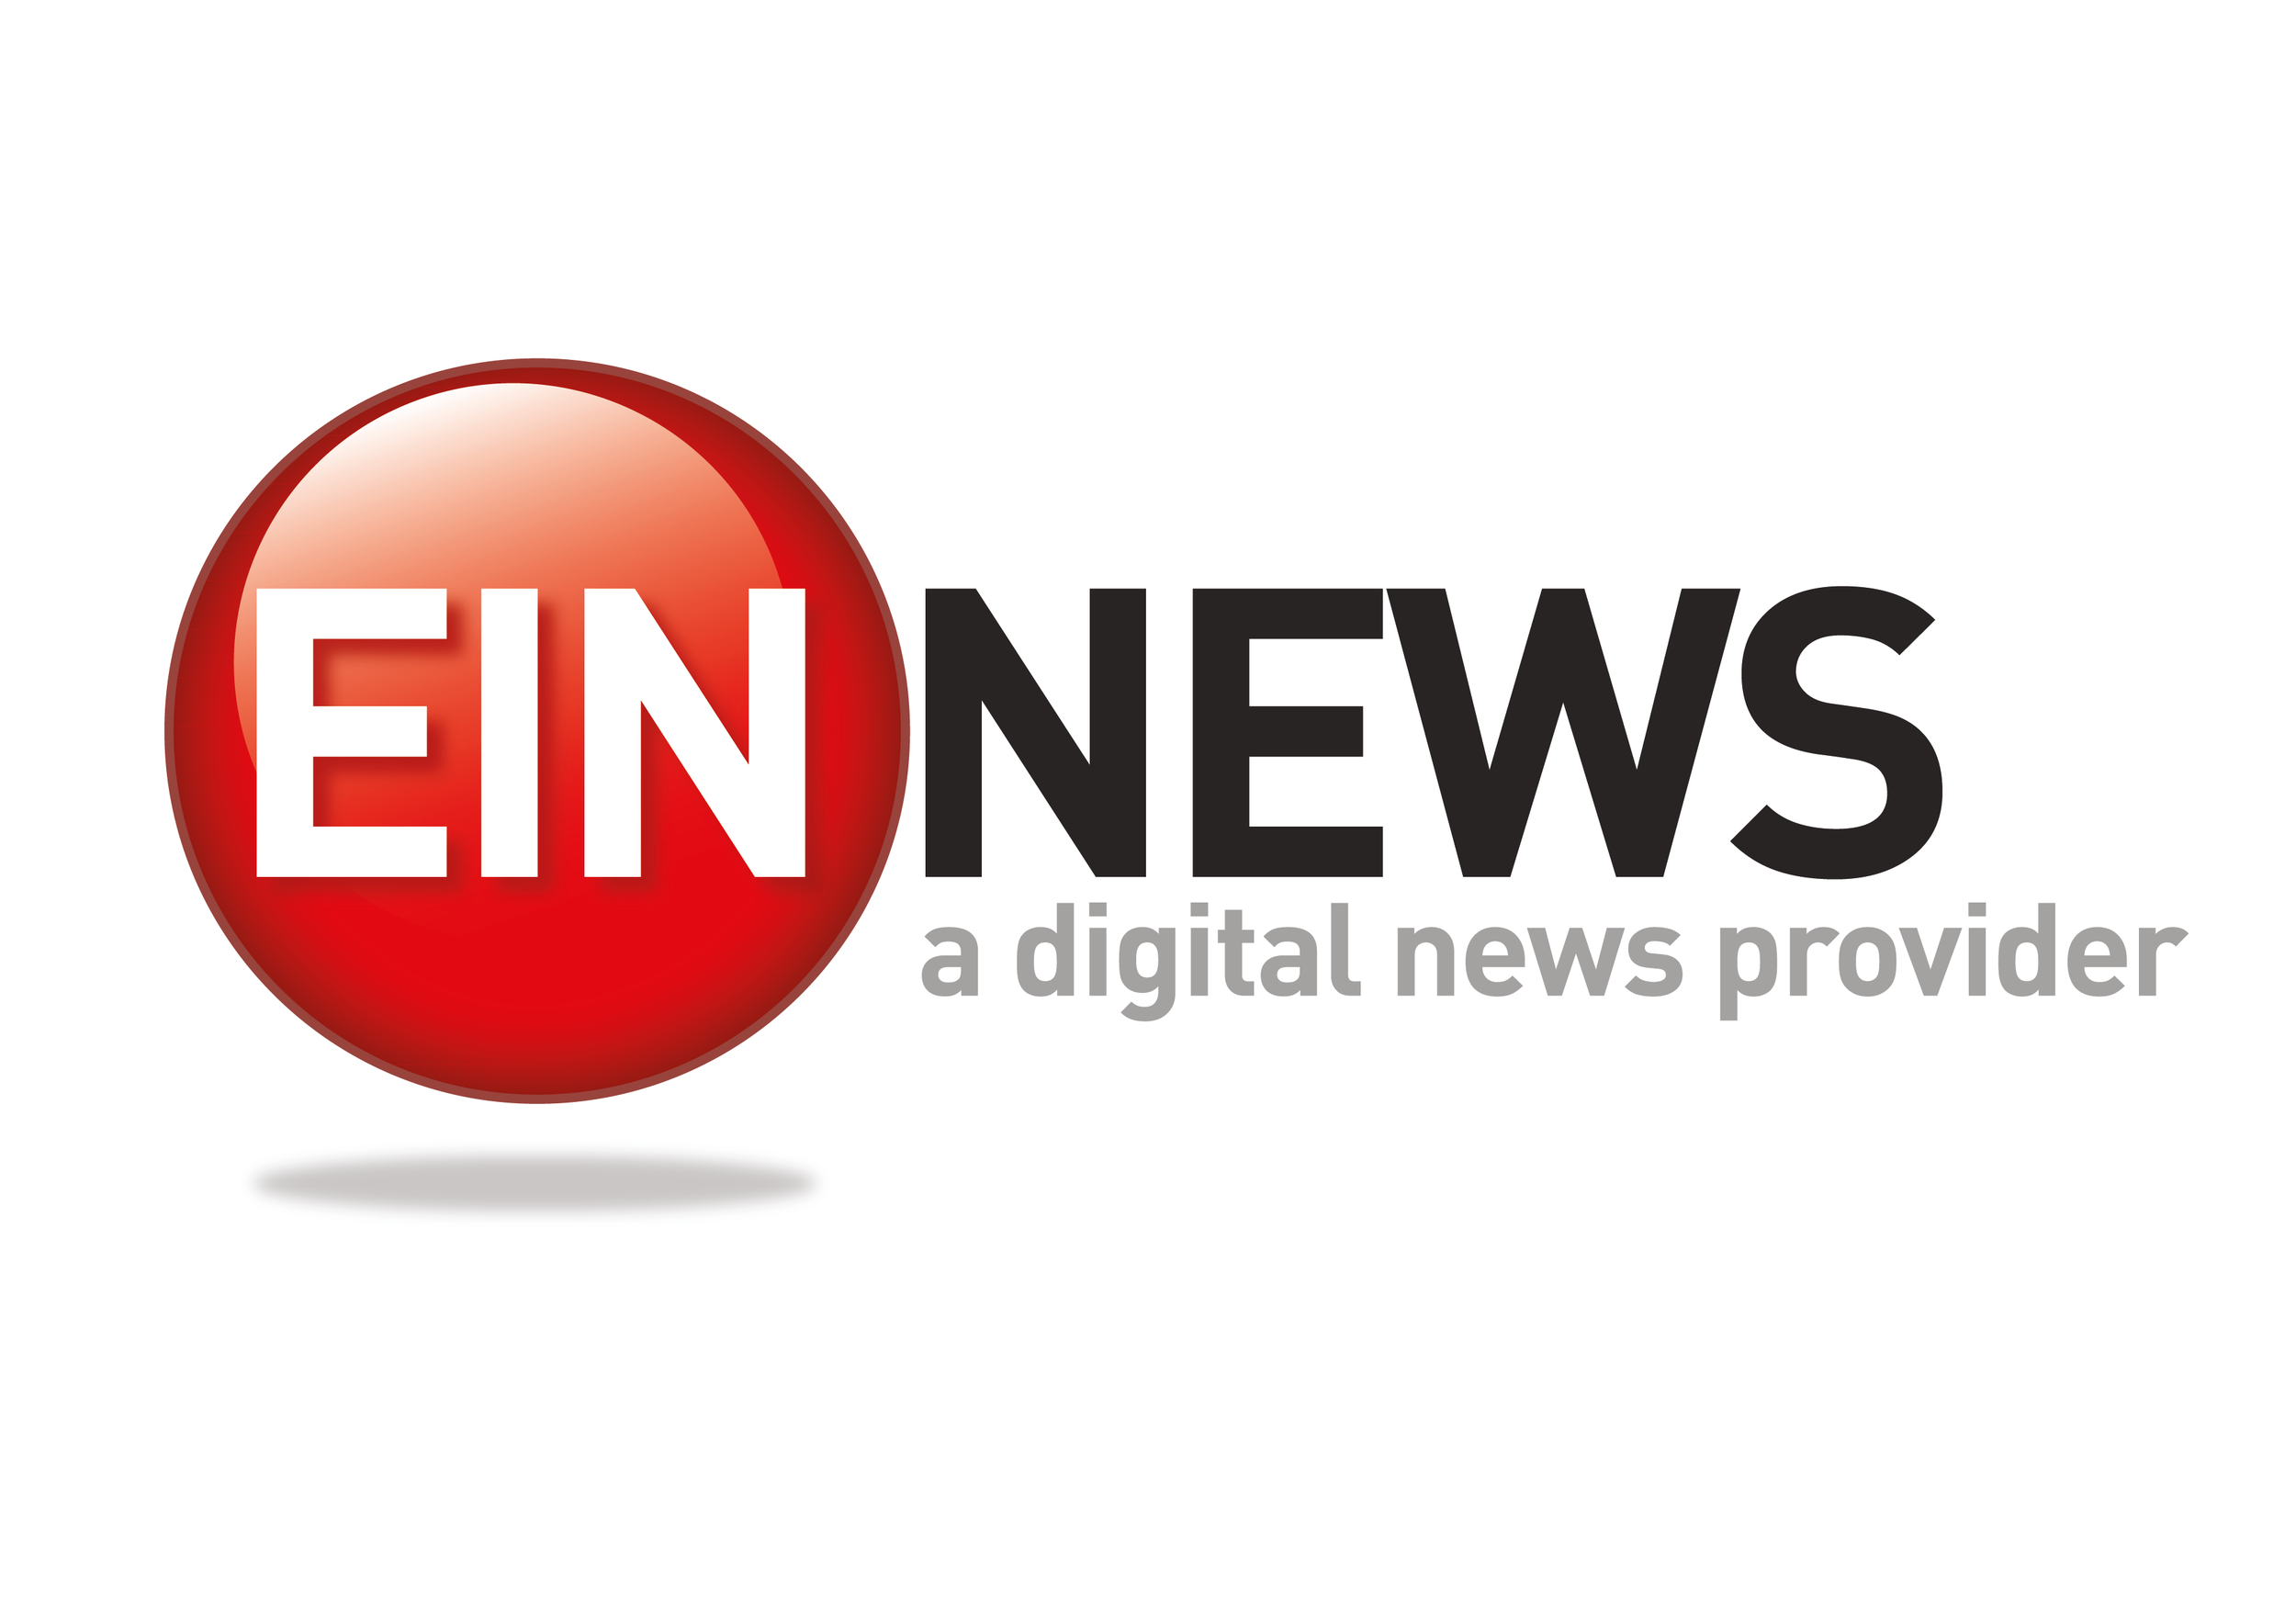 einnews_logo_white.png